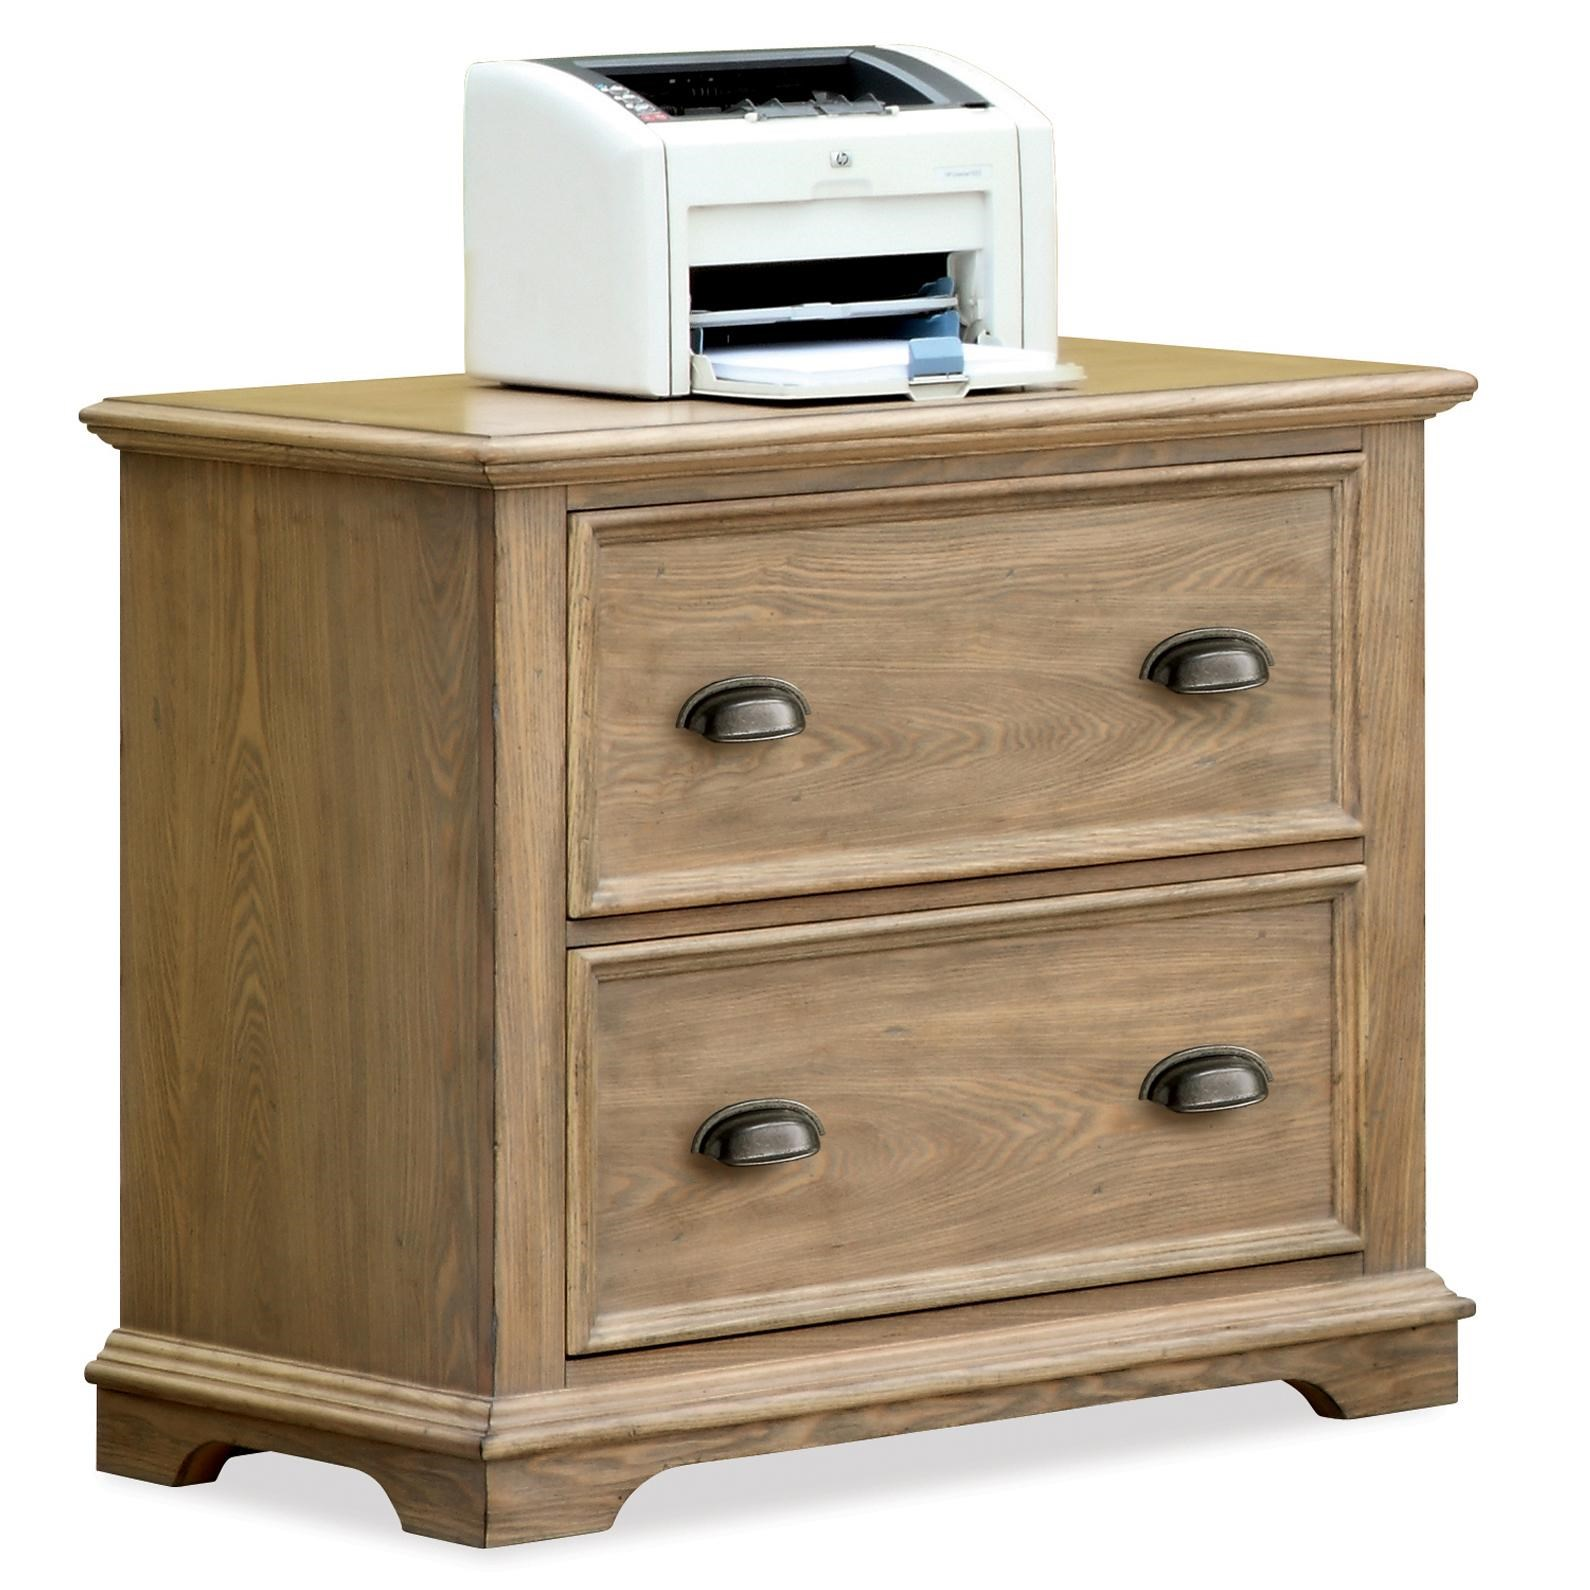 Wood Lateral File Cabinets riverside furniture coventry lateral file cabinet with 2 drawers